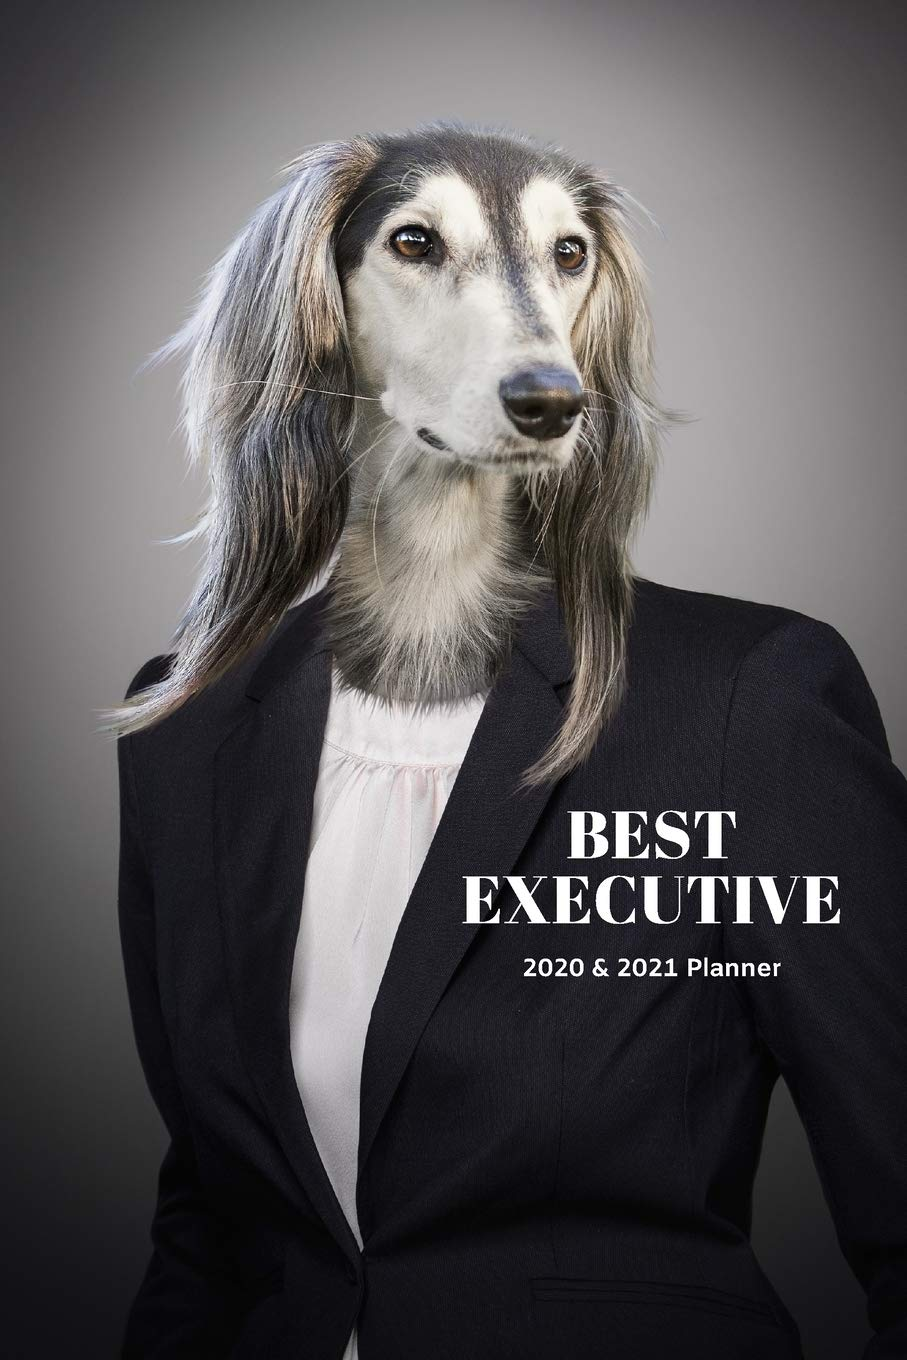 Best Executive Afghan Hound Dog 2020 & 2021 Weekly Planner | Two Year Appointment Book Gift | Agenda Notebook for New…